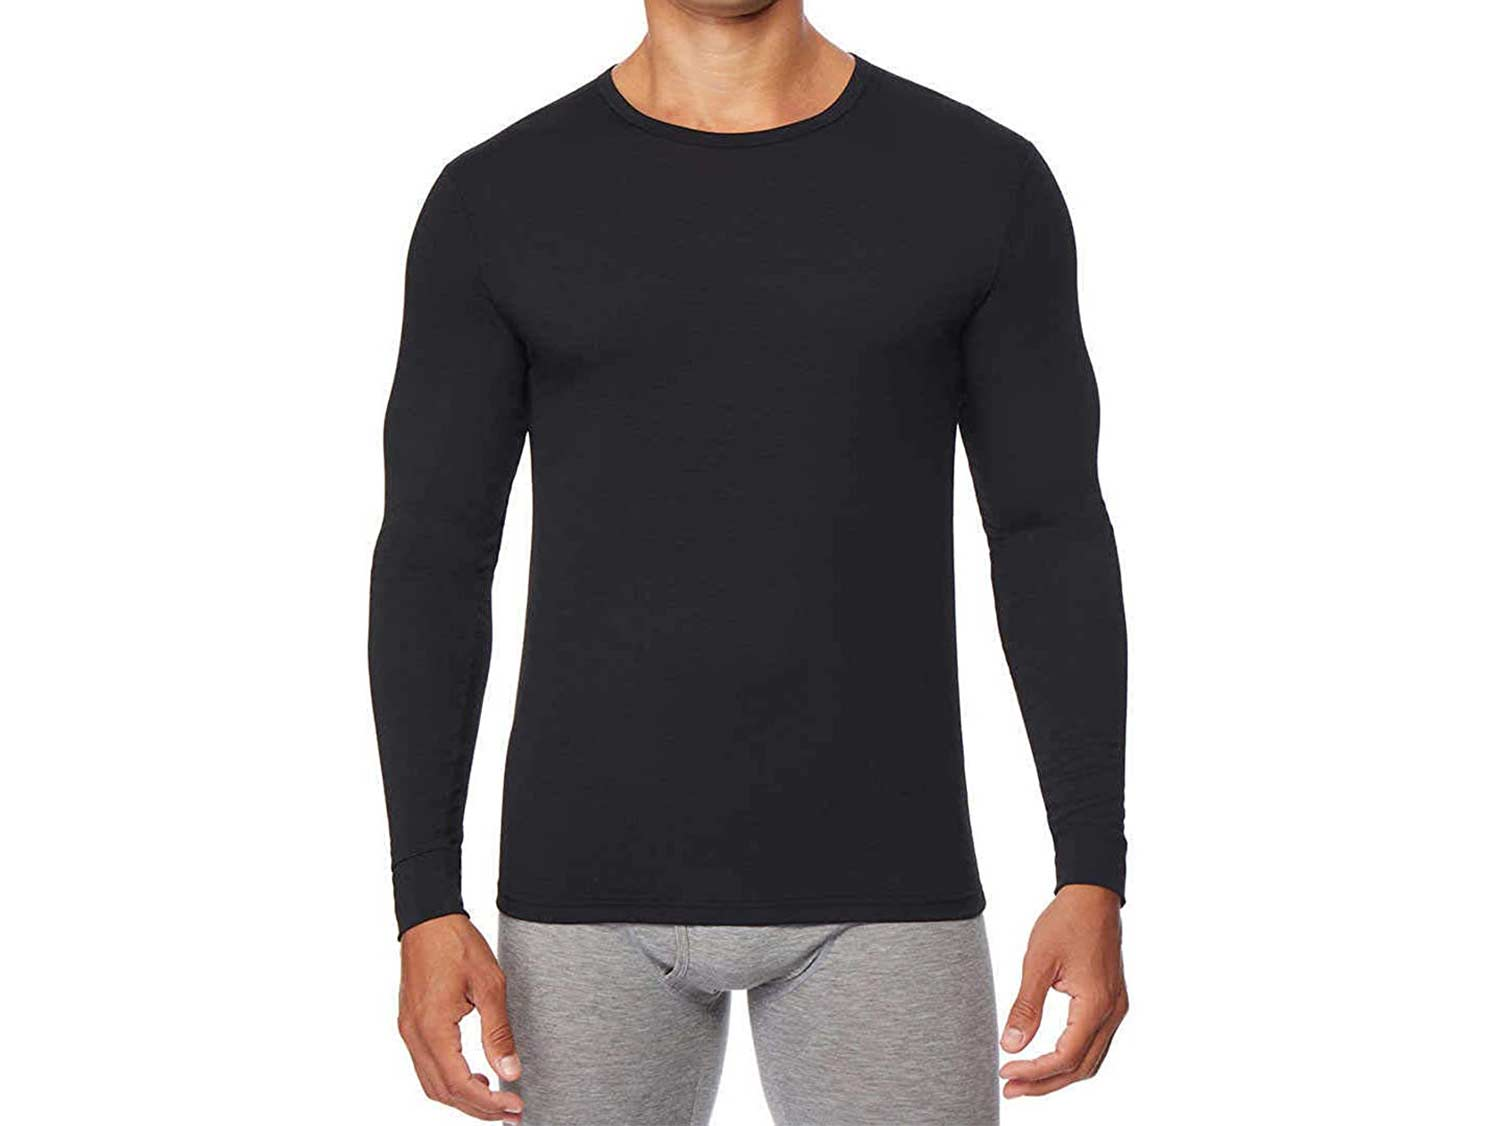 32 DEGREES Men's Heat Long Sleeve Crew Neck